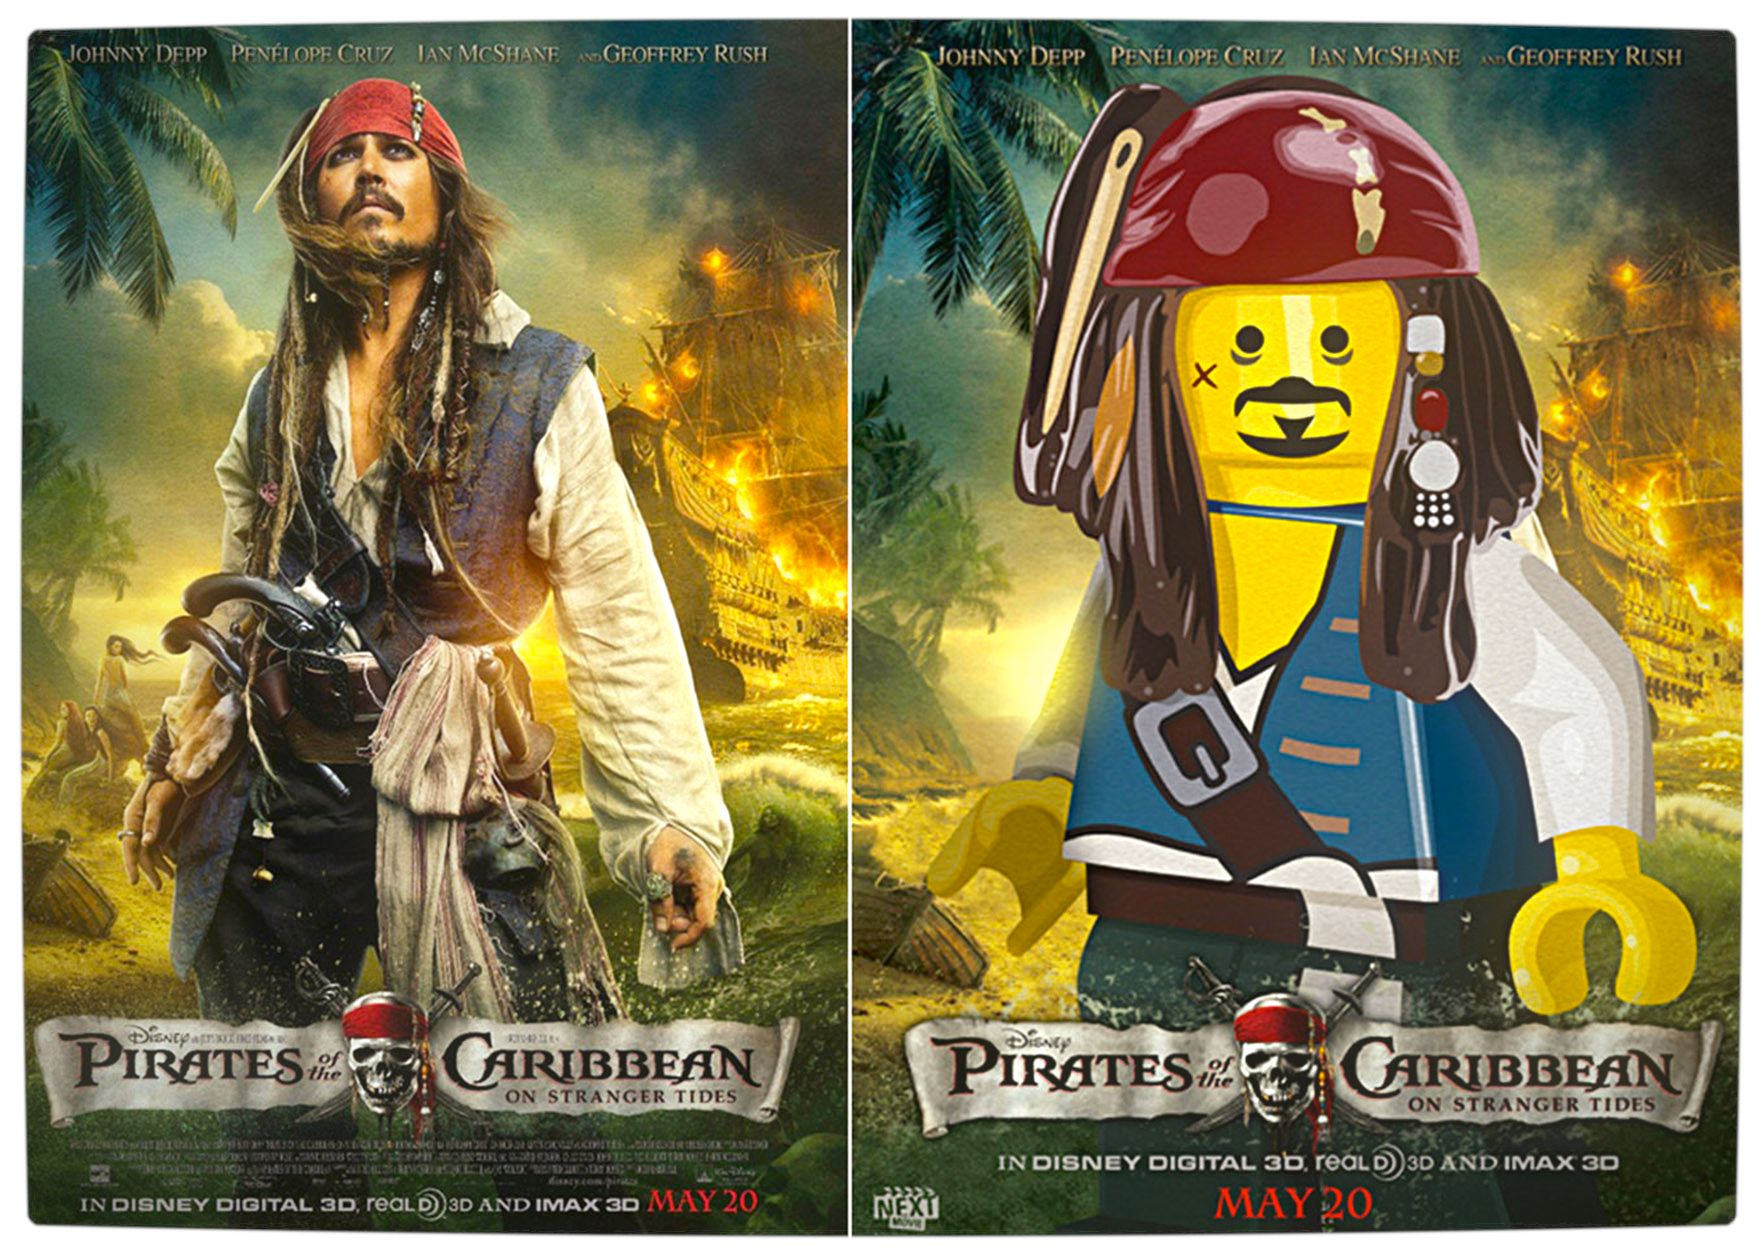 Vamers - Fandom - Movie Lego Posters - Pirates of the Caribbean